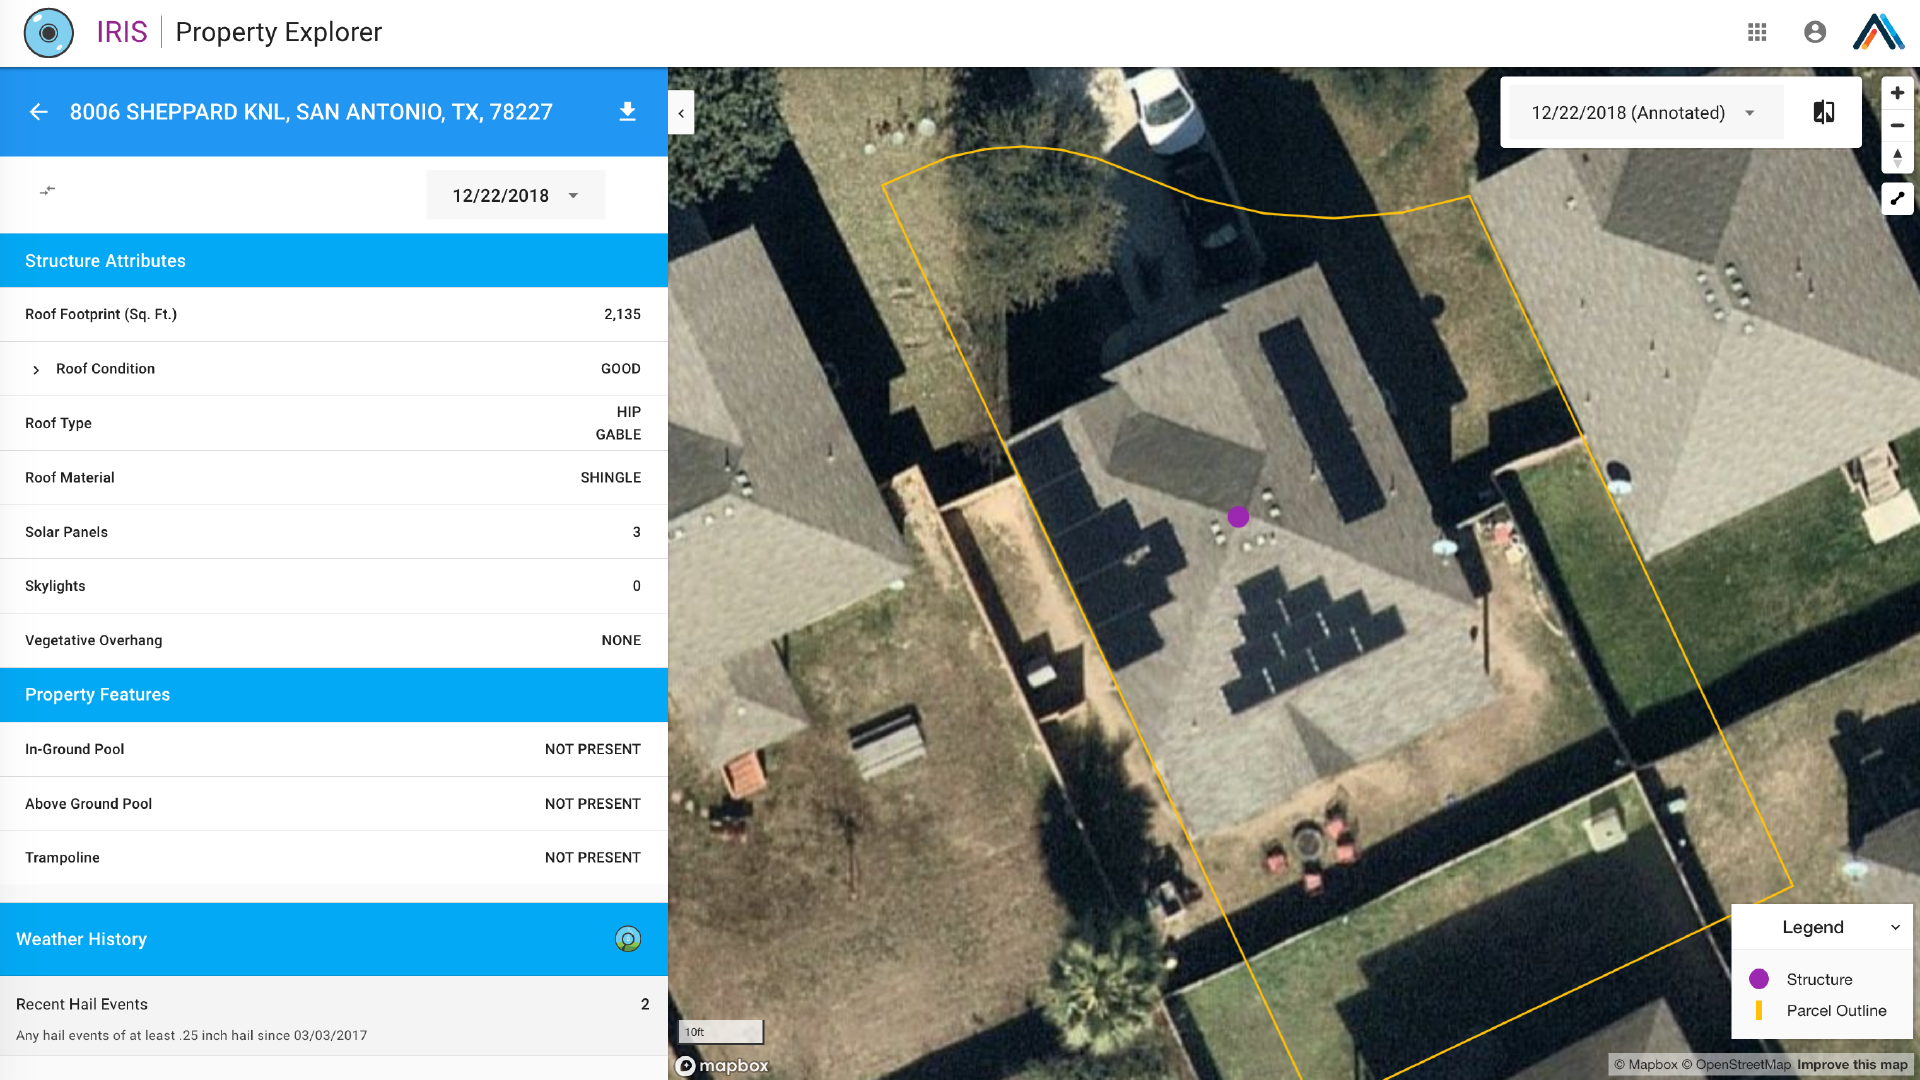 IRIS aerial imagery property analytics for insurance